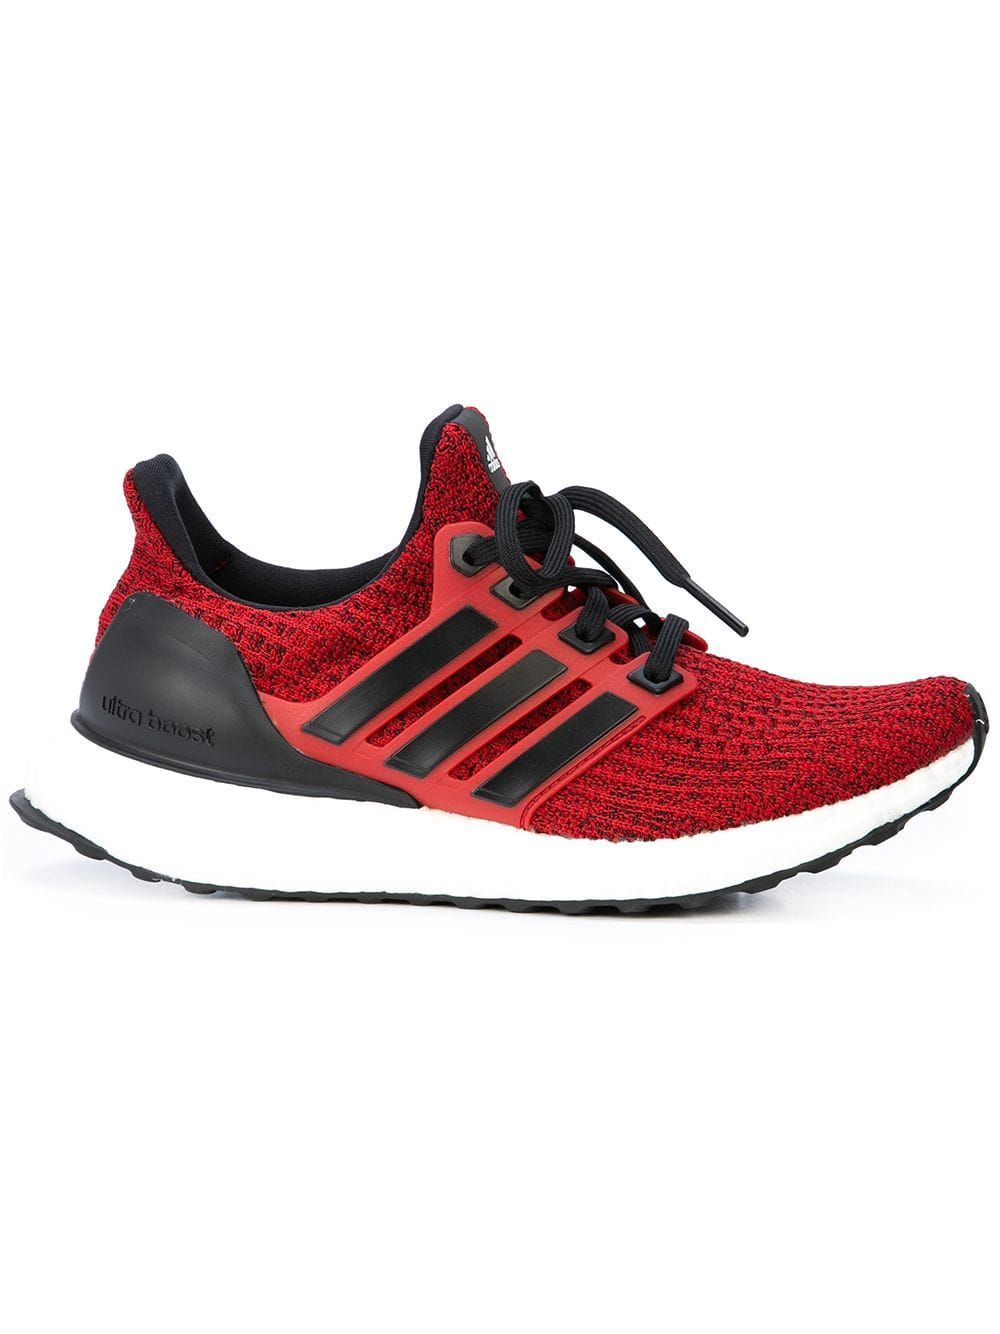 timeless design 5eee4 35a4d ADIDAS ORIGINALS ADIDAS SOCK LACE-UP SNEAKERS - RED. adidasoriginals shoes